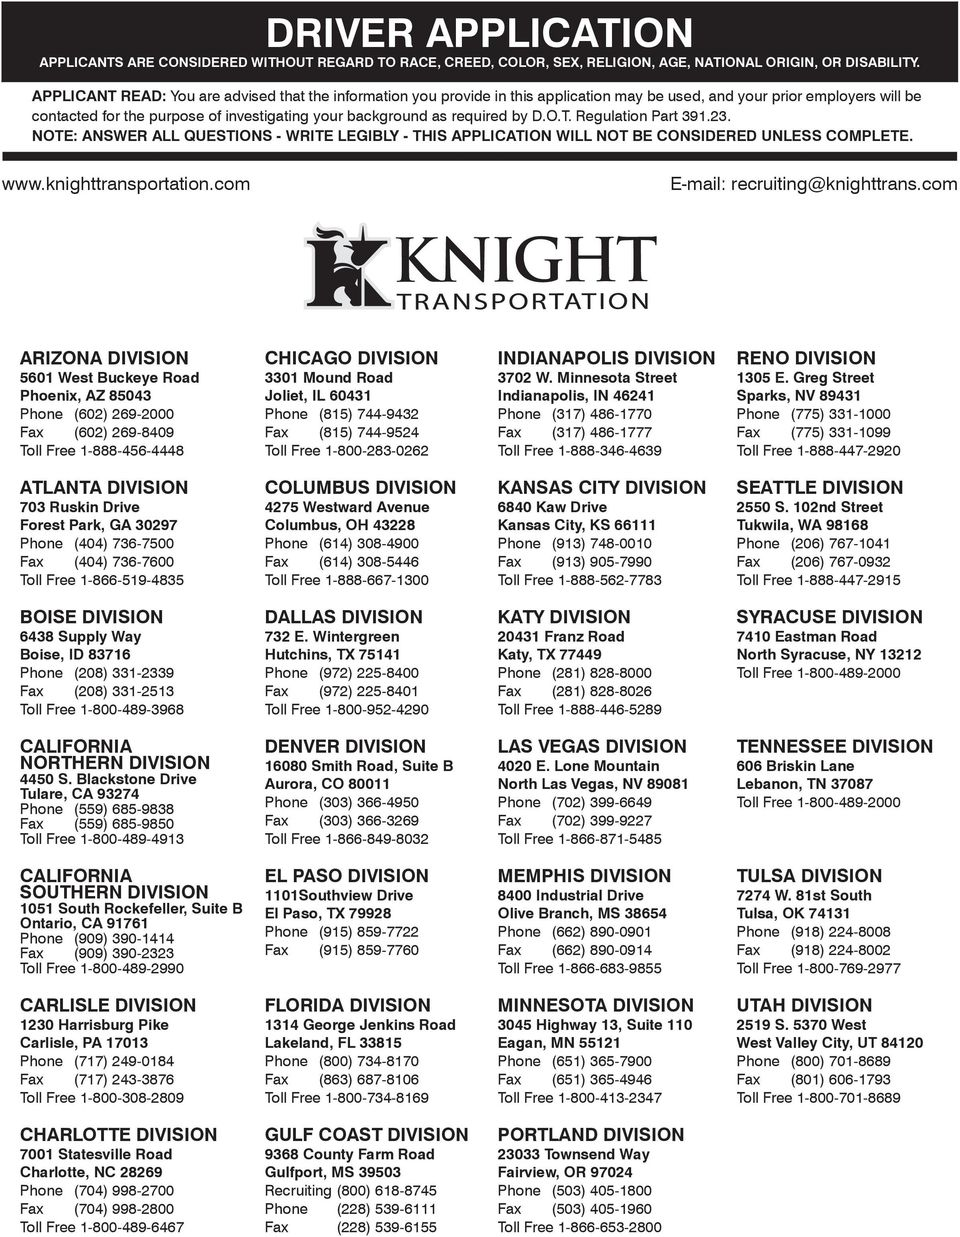 required by D.O.T. Regulation Part 391.23. NOTE: ANSWER ALL QUESTIONS - WRITE LEGIBLY - THIS APPLICATION WILL NOT BE CONSIDERED UNLESS COMPLETE. www.knighttransportation.